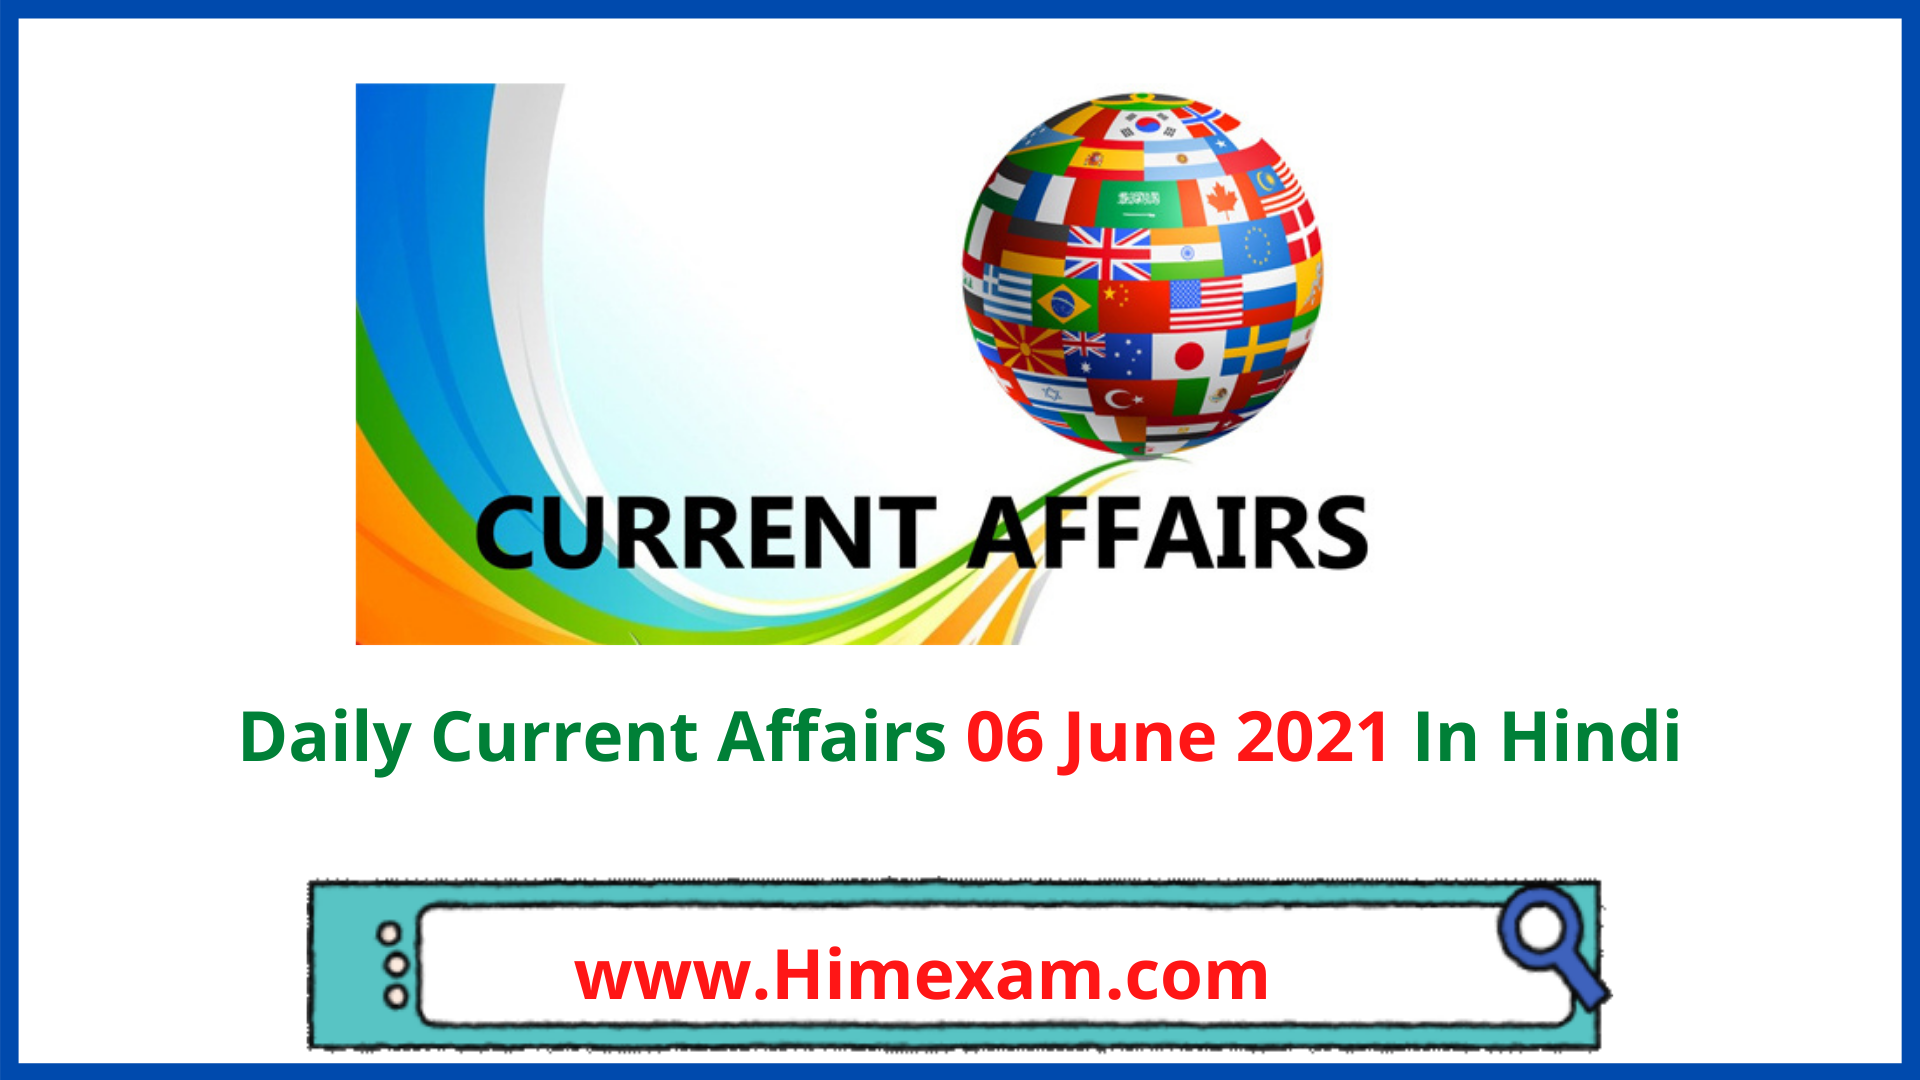 Daily Current Affairs 06 June 2021 In Hindi